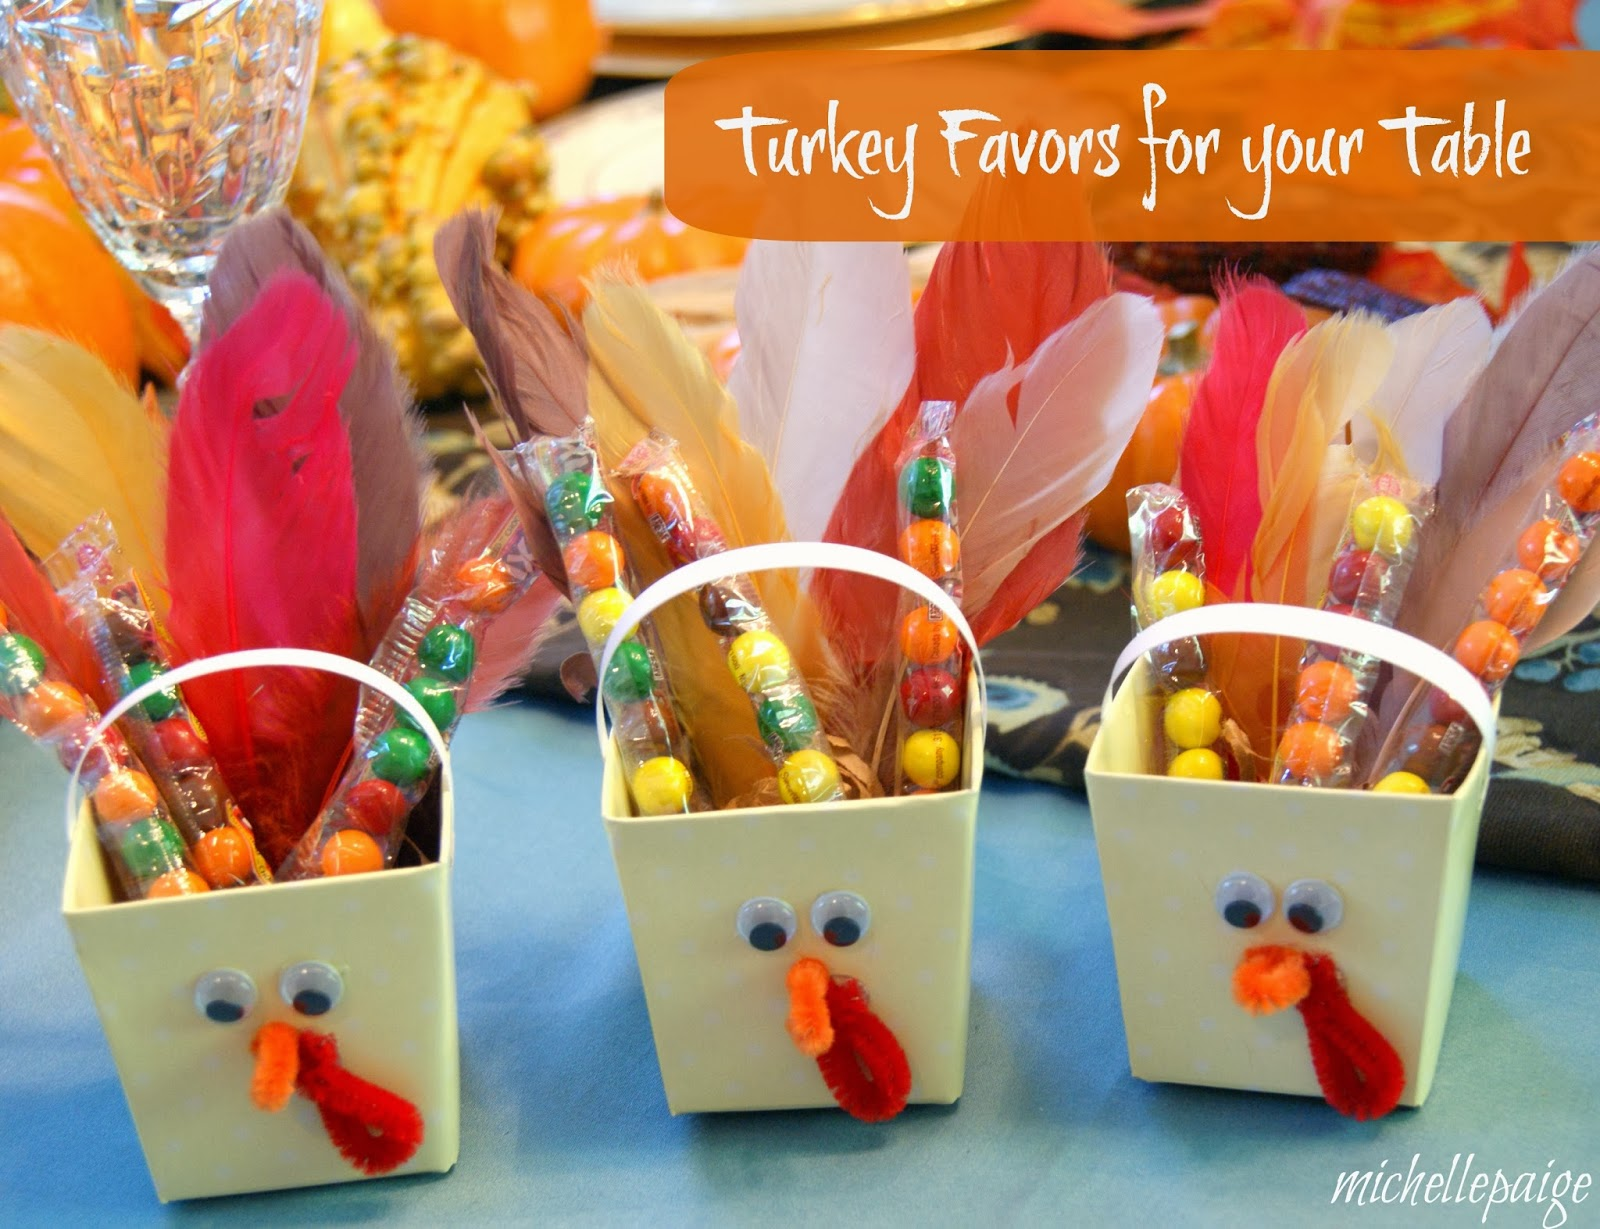 Michelle paige s candy turkey favors for your table